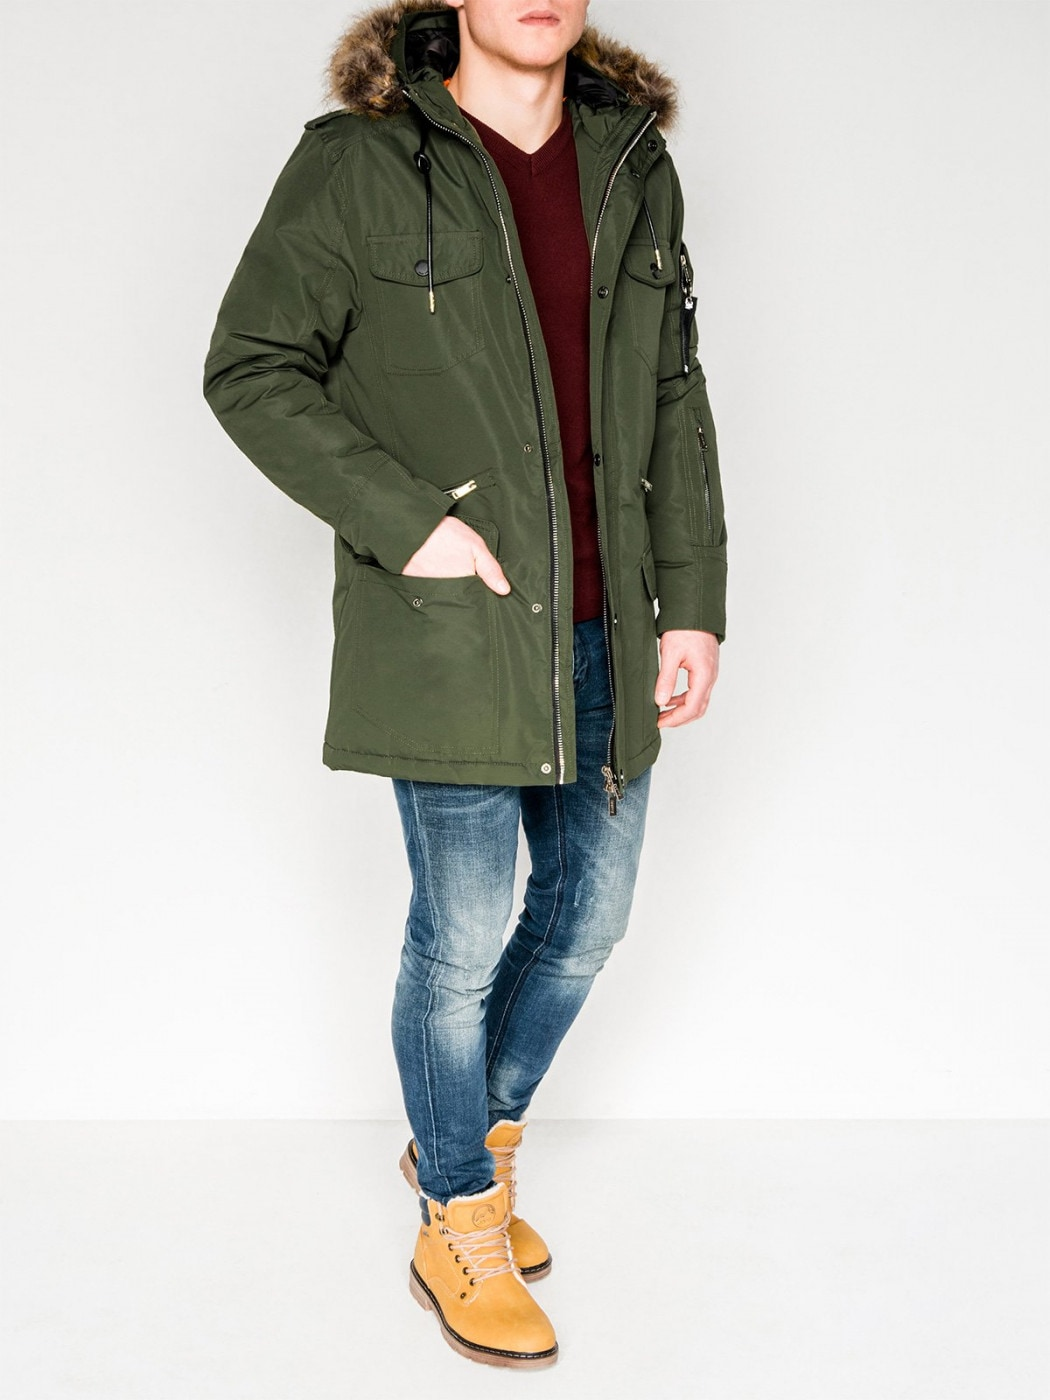 Ombre Clothing Men's winter jacket C382